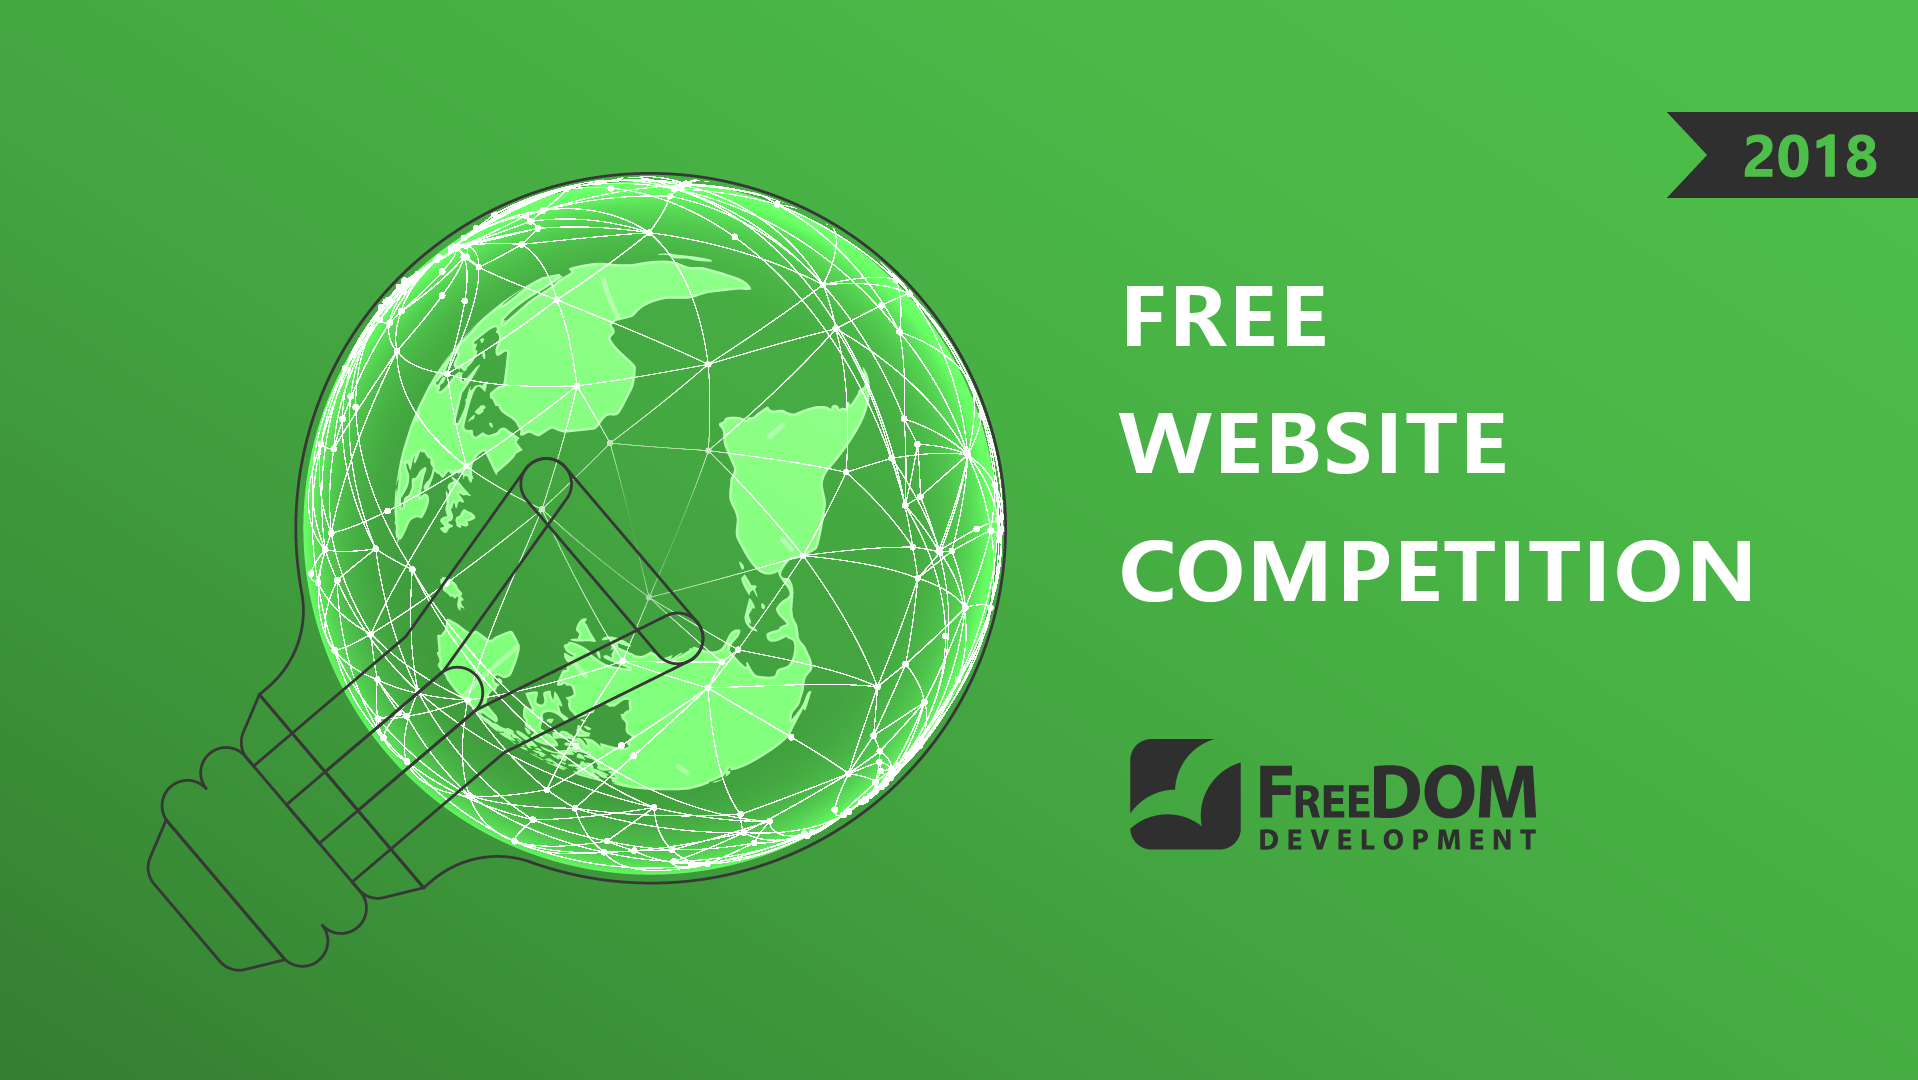 Presenting Free Website Competition 2018 on October 7, at 14:15, hall 1 (3rd floor)